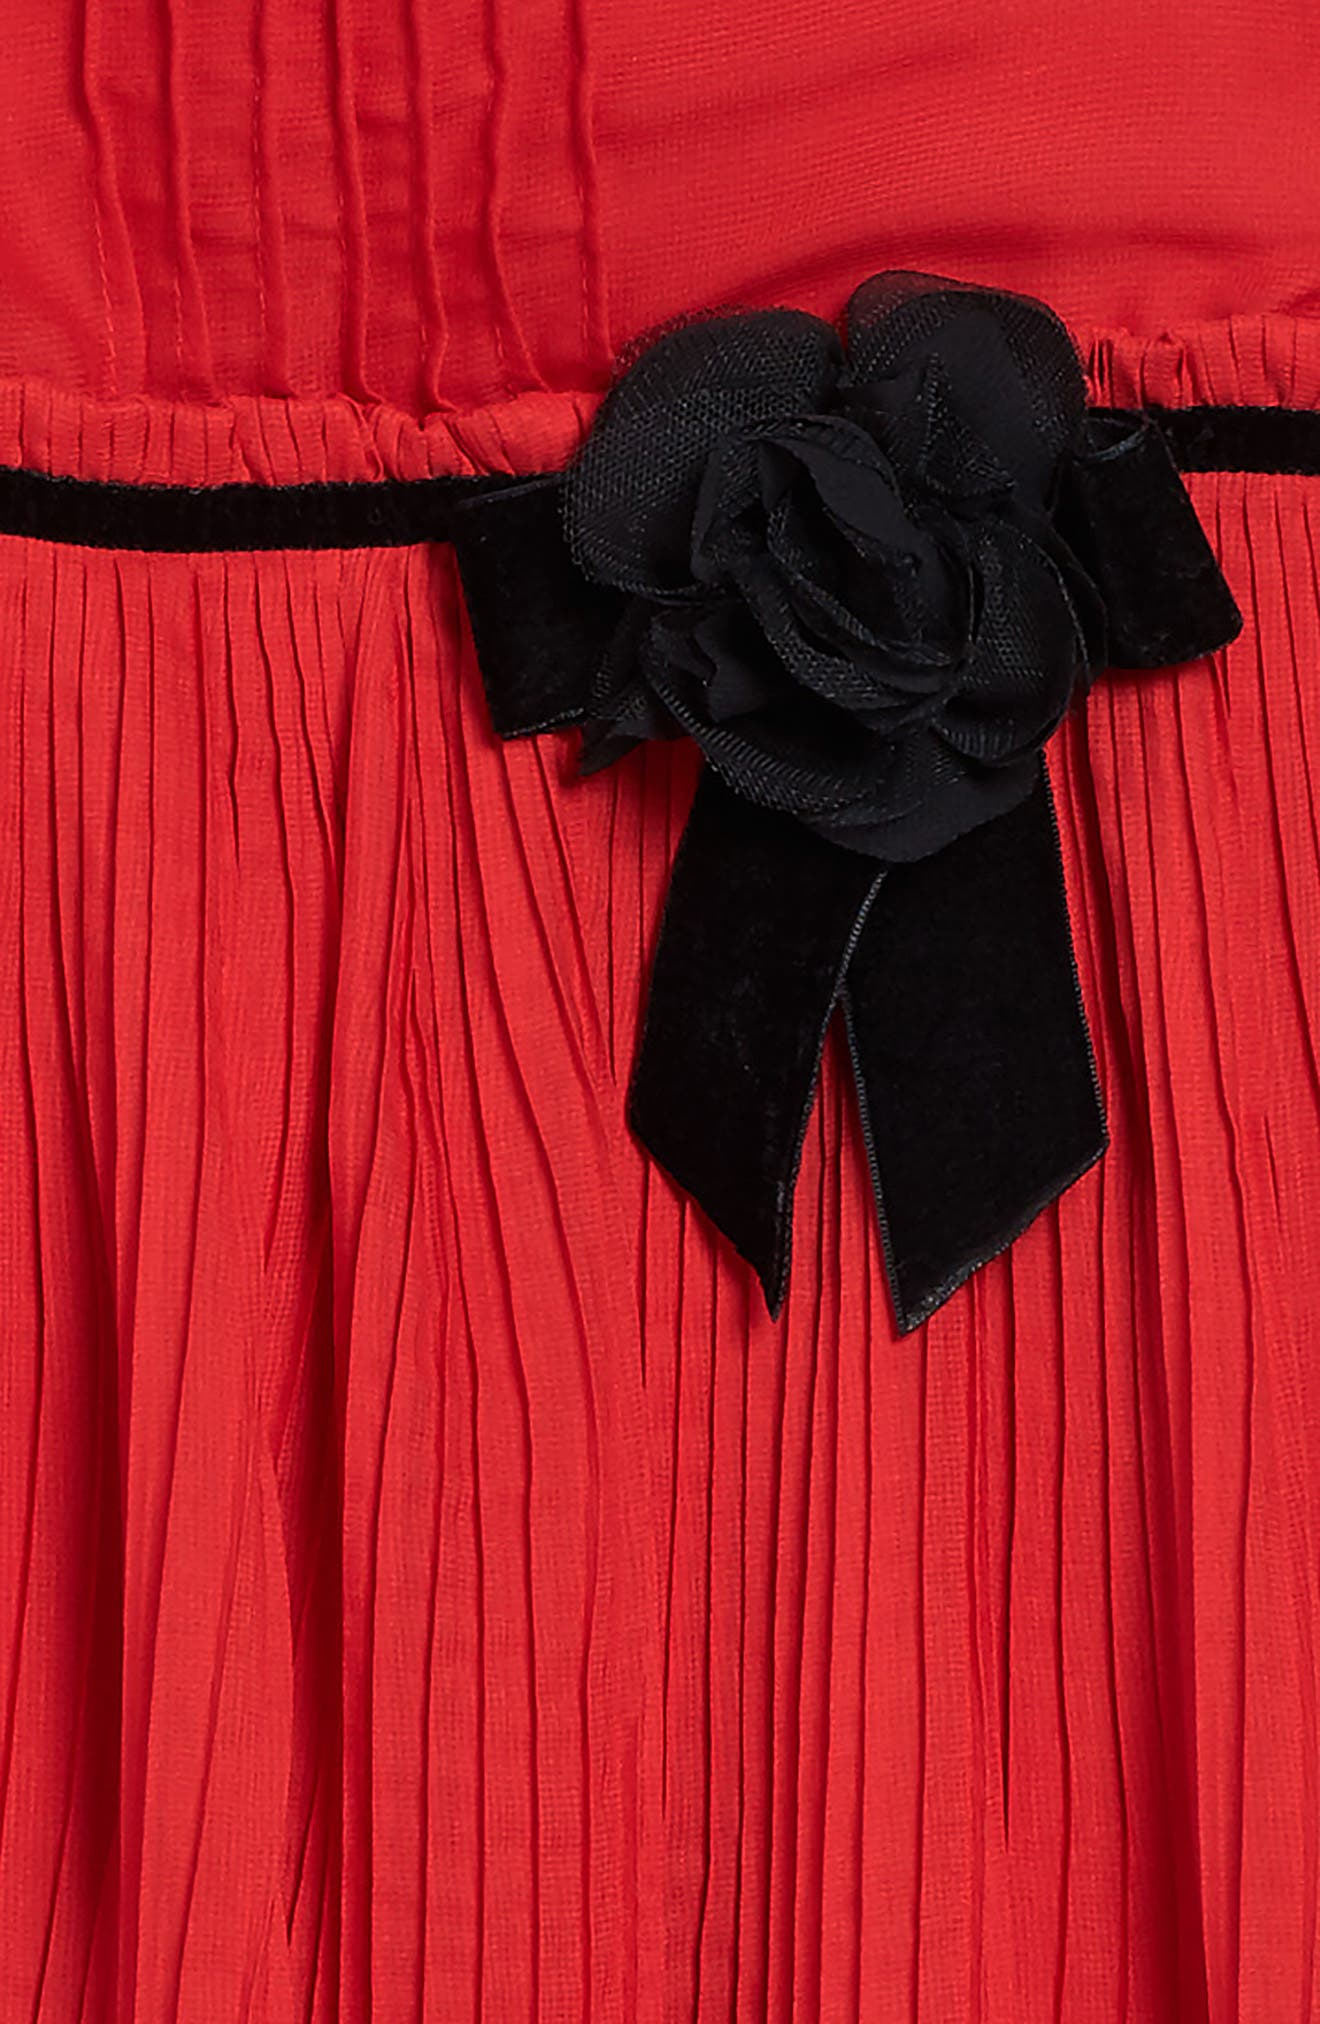 pleated chiffon party dress,                             Alternate thumbnail 3, color,                             610